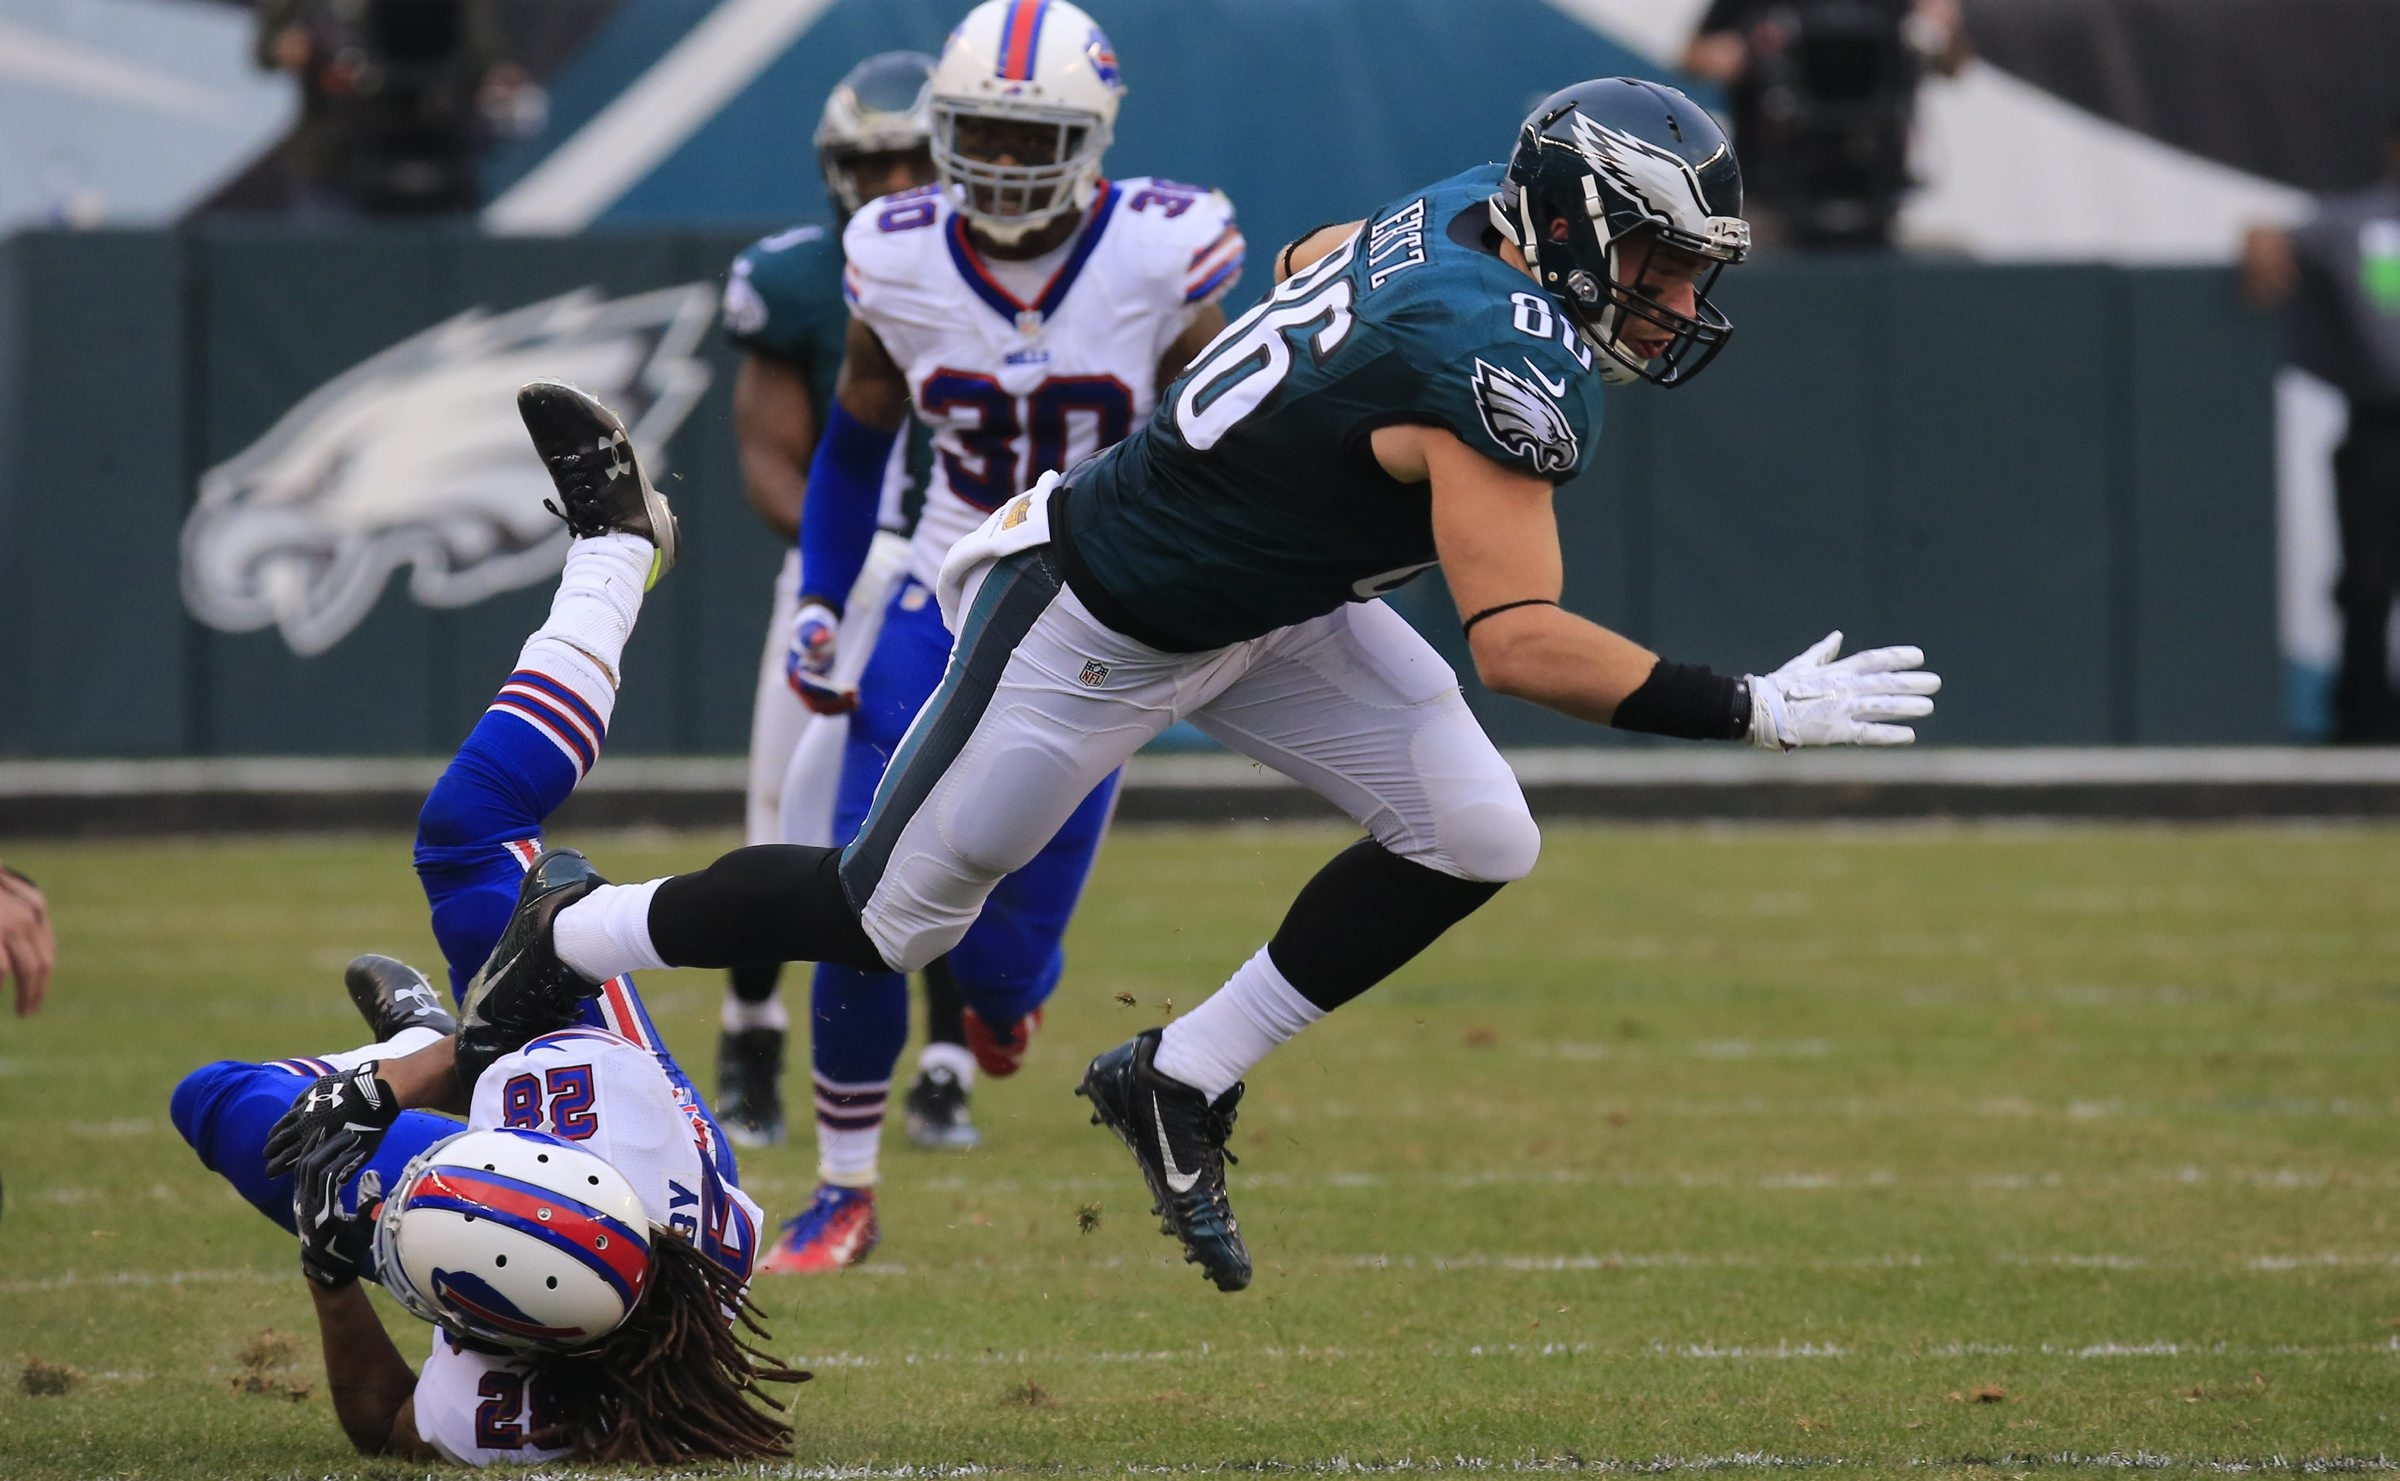 Zach Ertz of the Eagles pulls away from a fallen Bills cornerback Ronald Darby on a reception. Ertz led the Eagles in receiving with five catches for 98 yards.